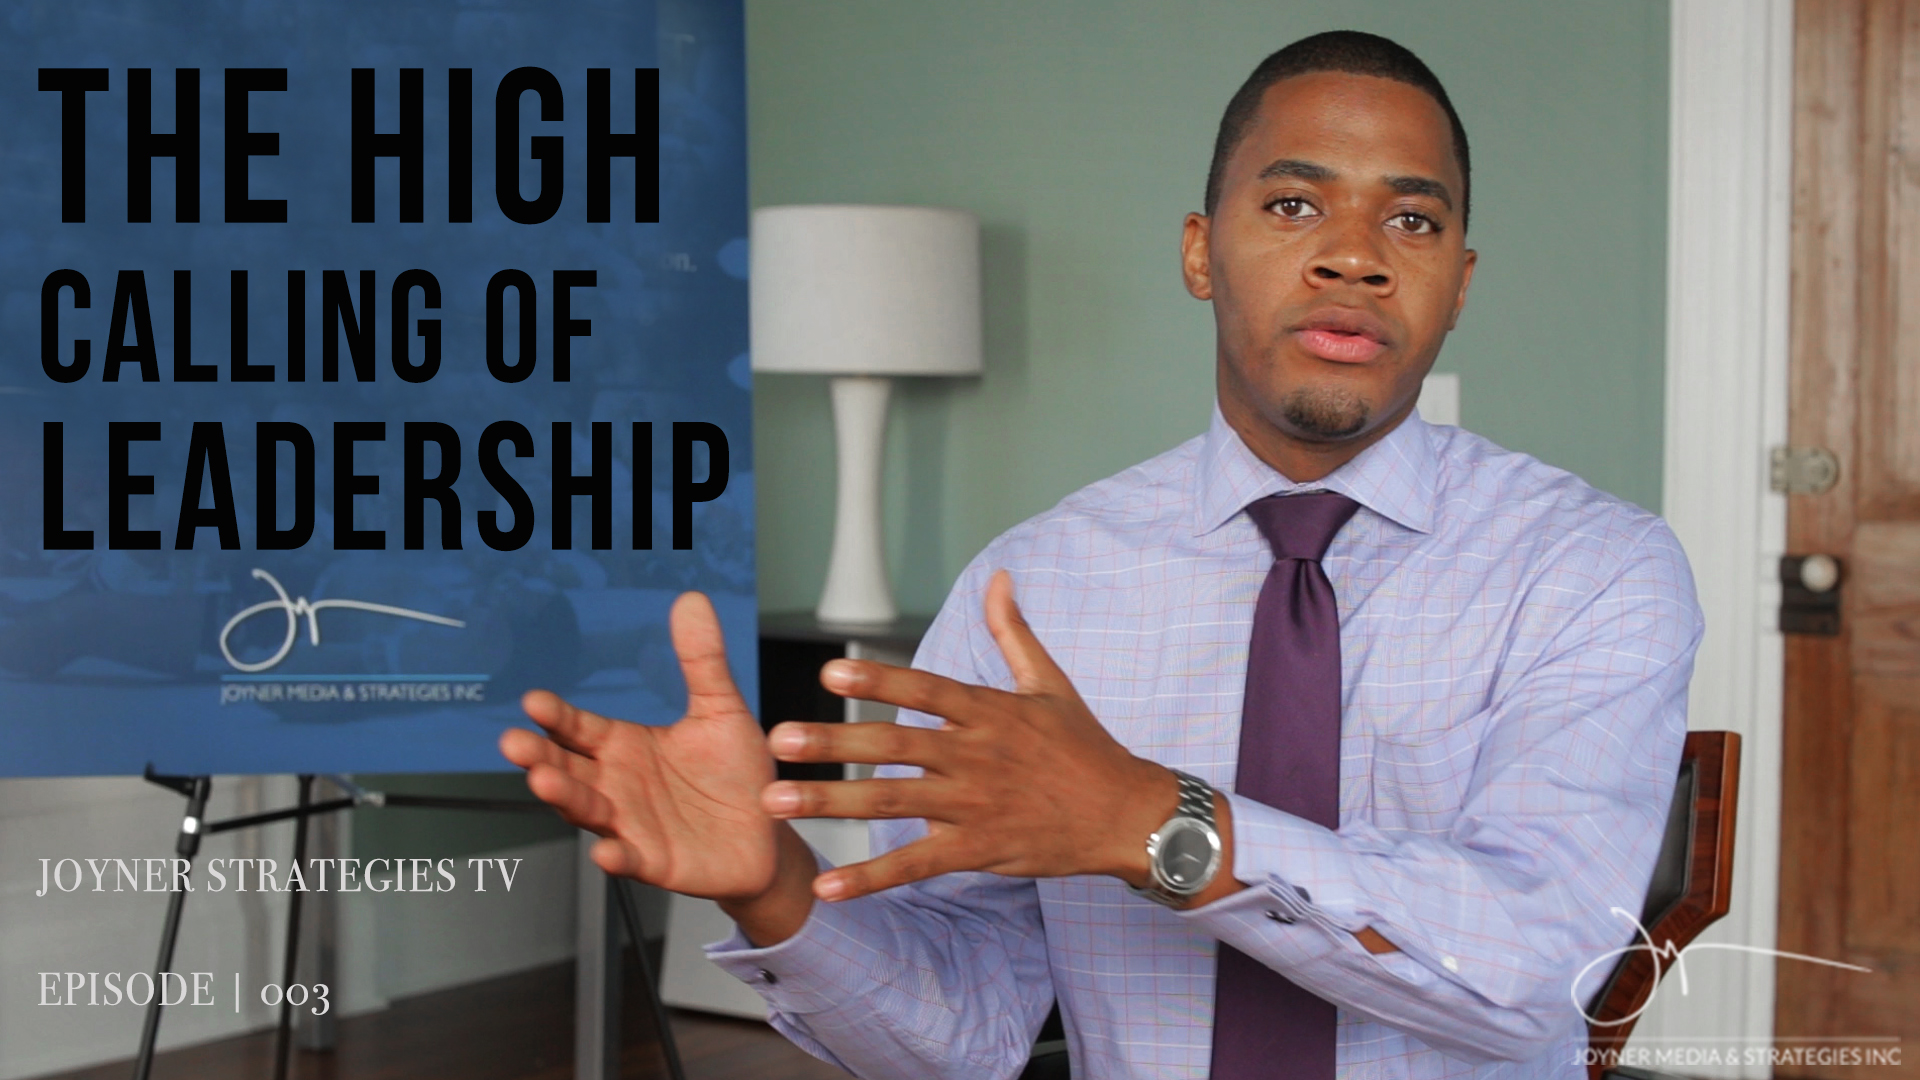 Check out our video on leadership  here!